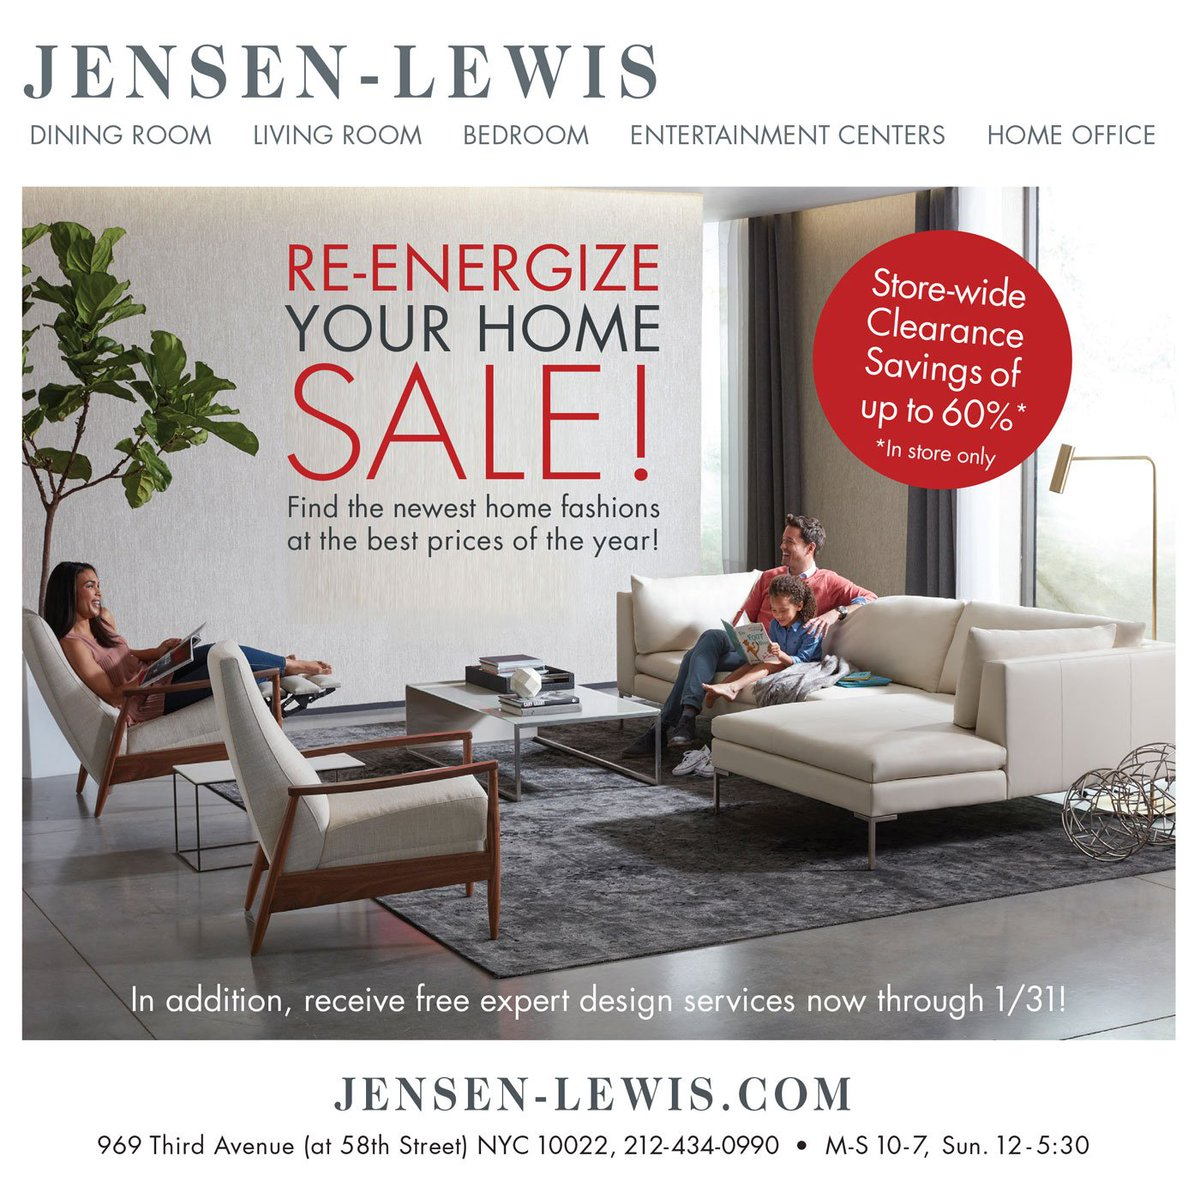 Get the newest home fashions at the lowest prices of the year in addition receive free expert design services until 1 31